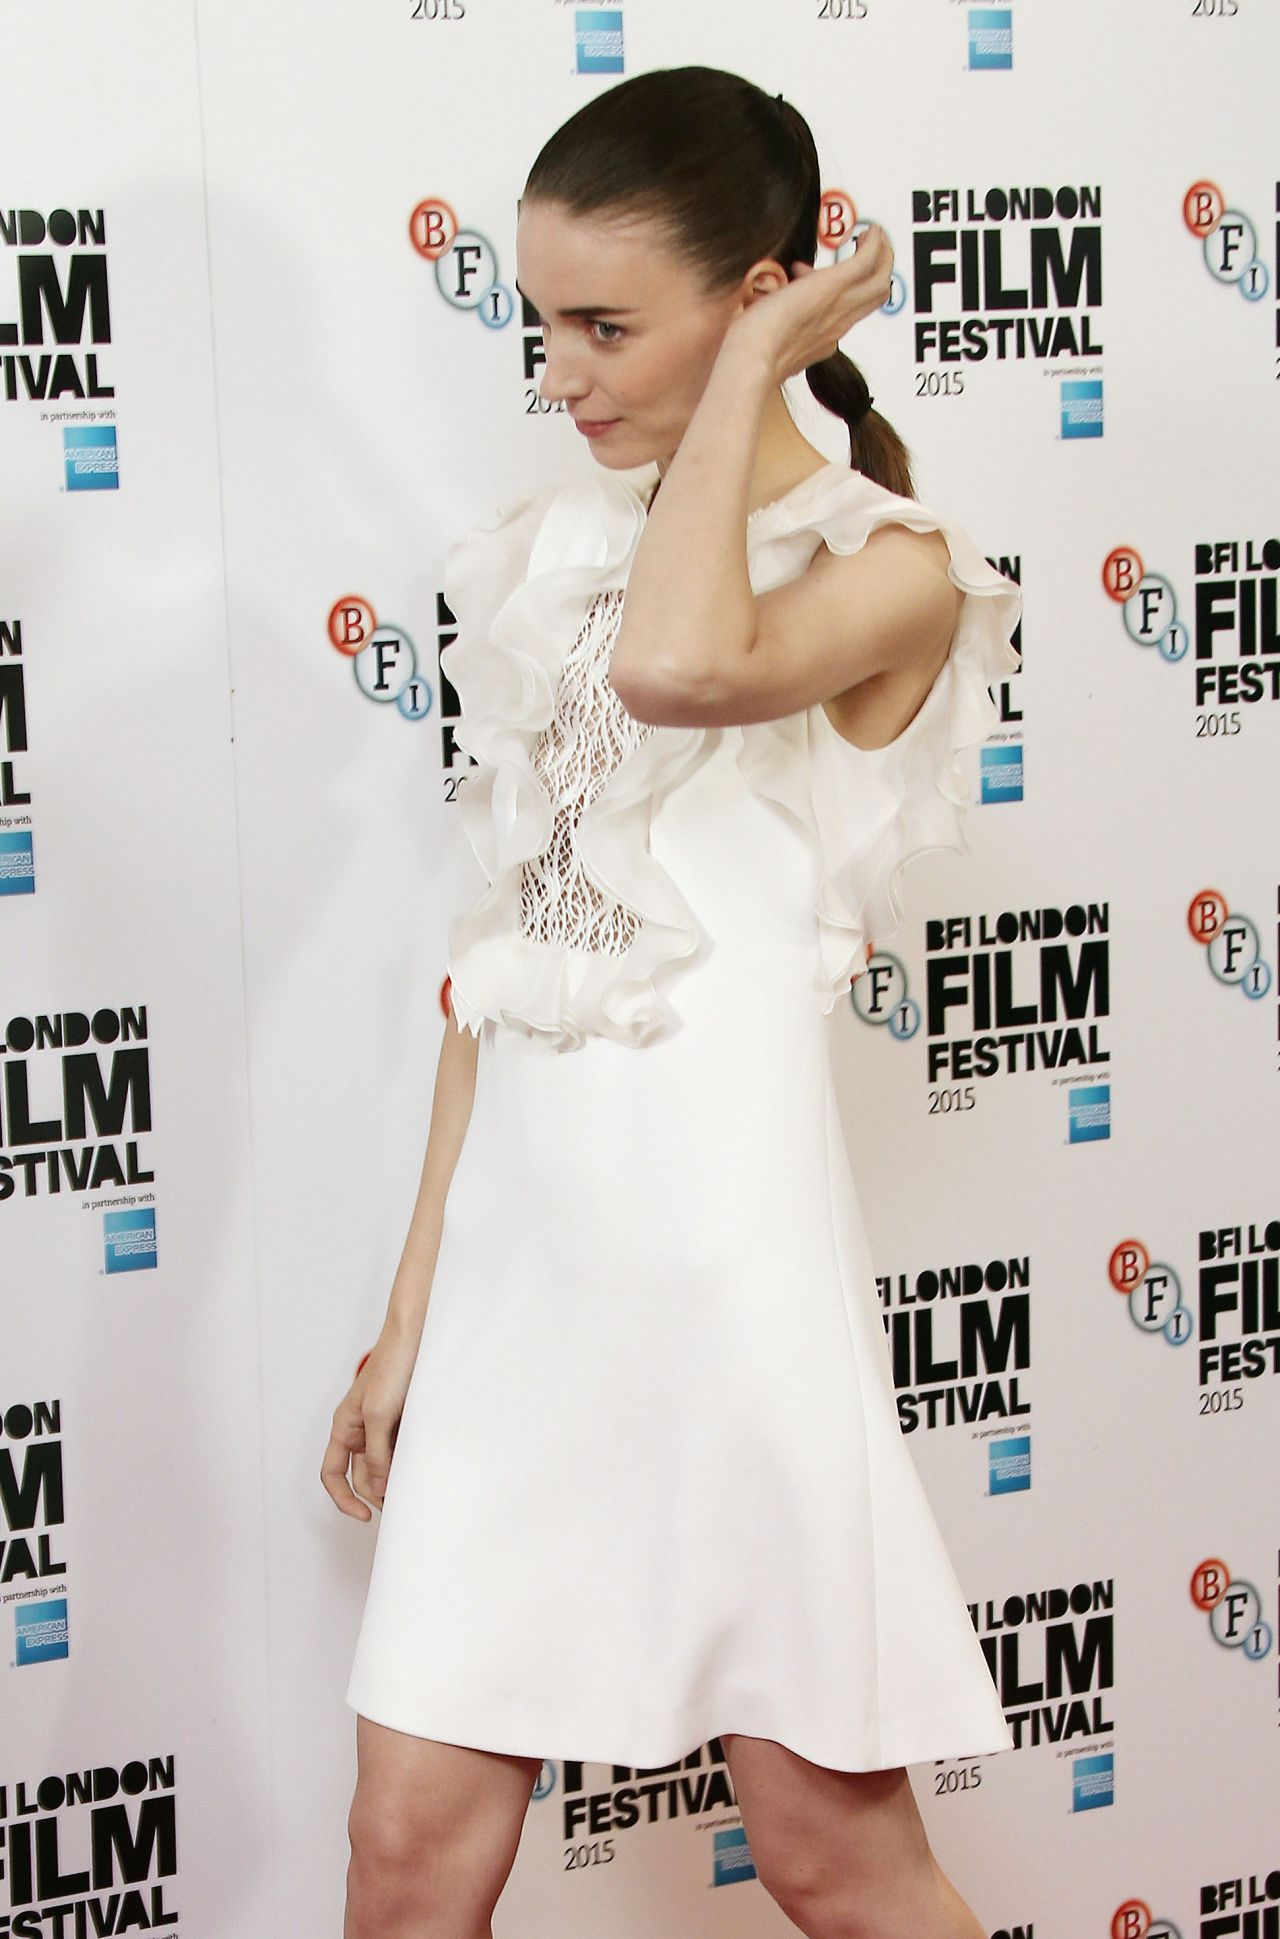 rooney-mara-carol-photocall-bfi-london-film-festival_4